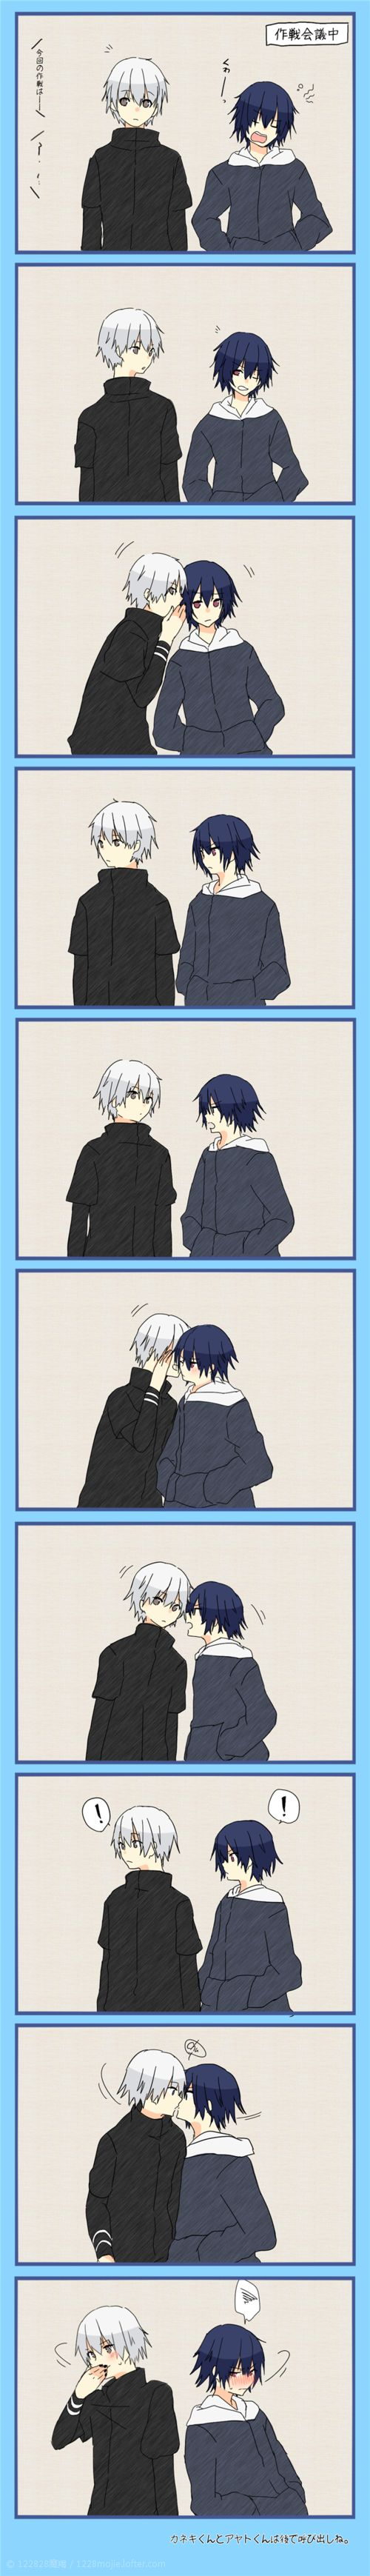 Tokyo Ghoul Kaneki x Ayato, don't really ship it but cute